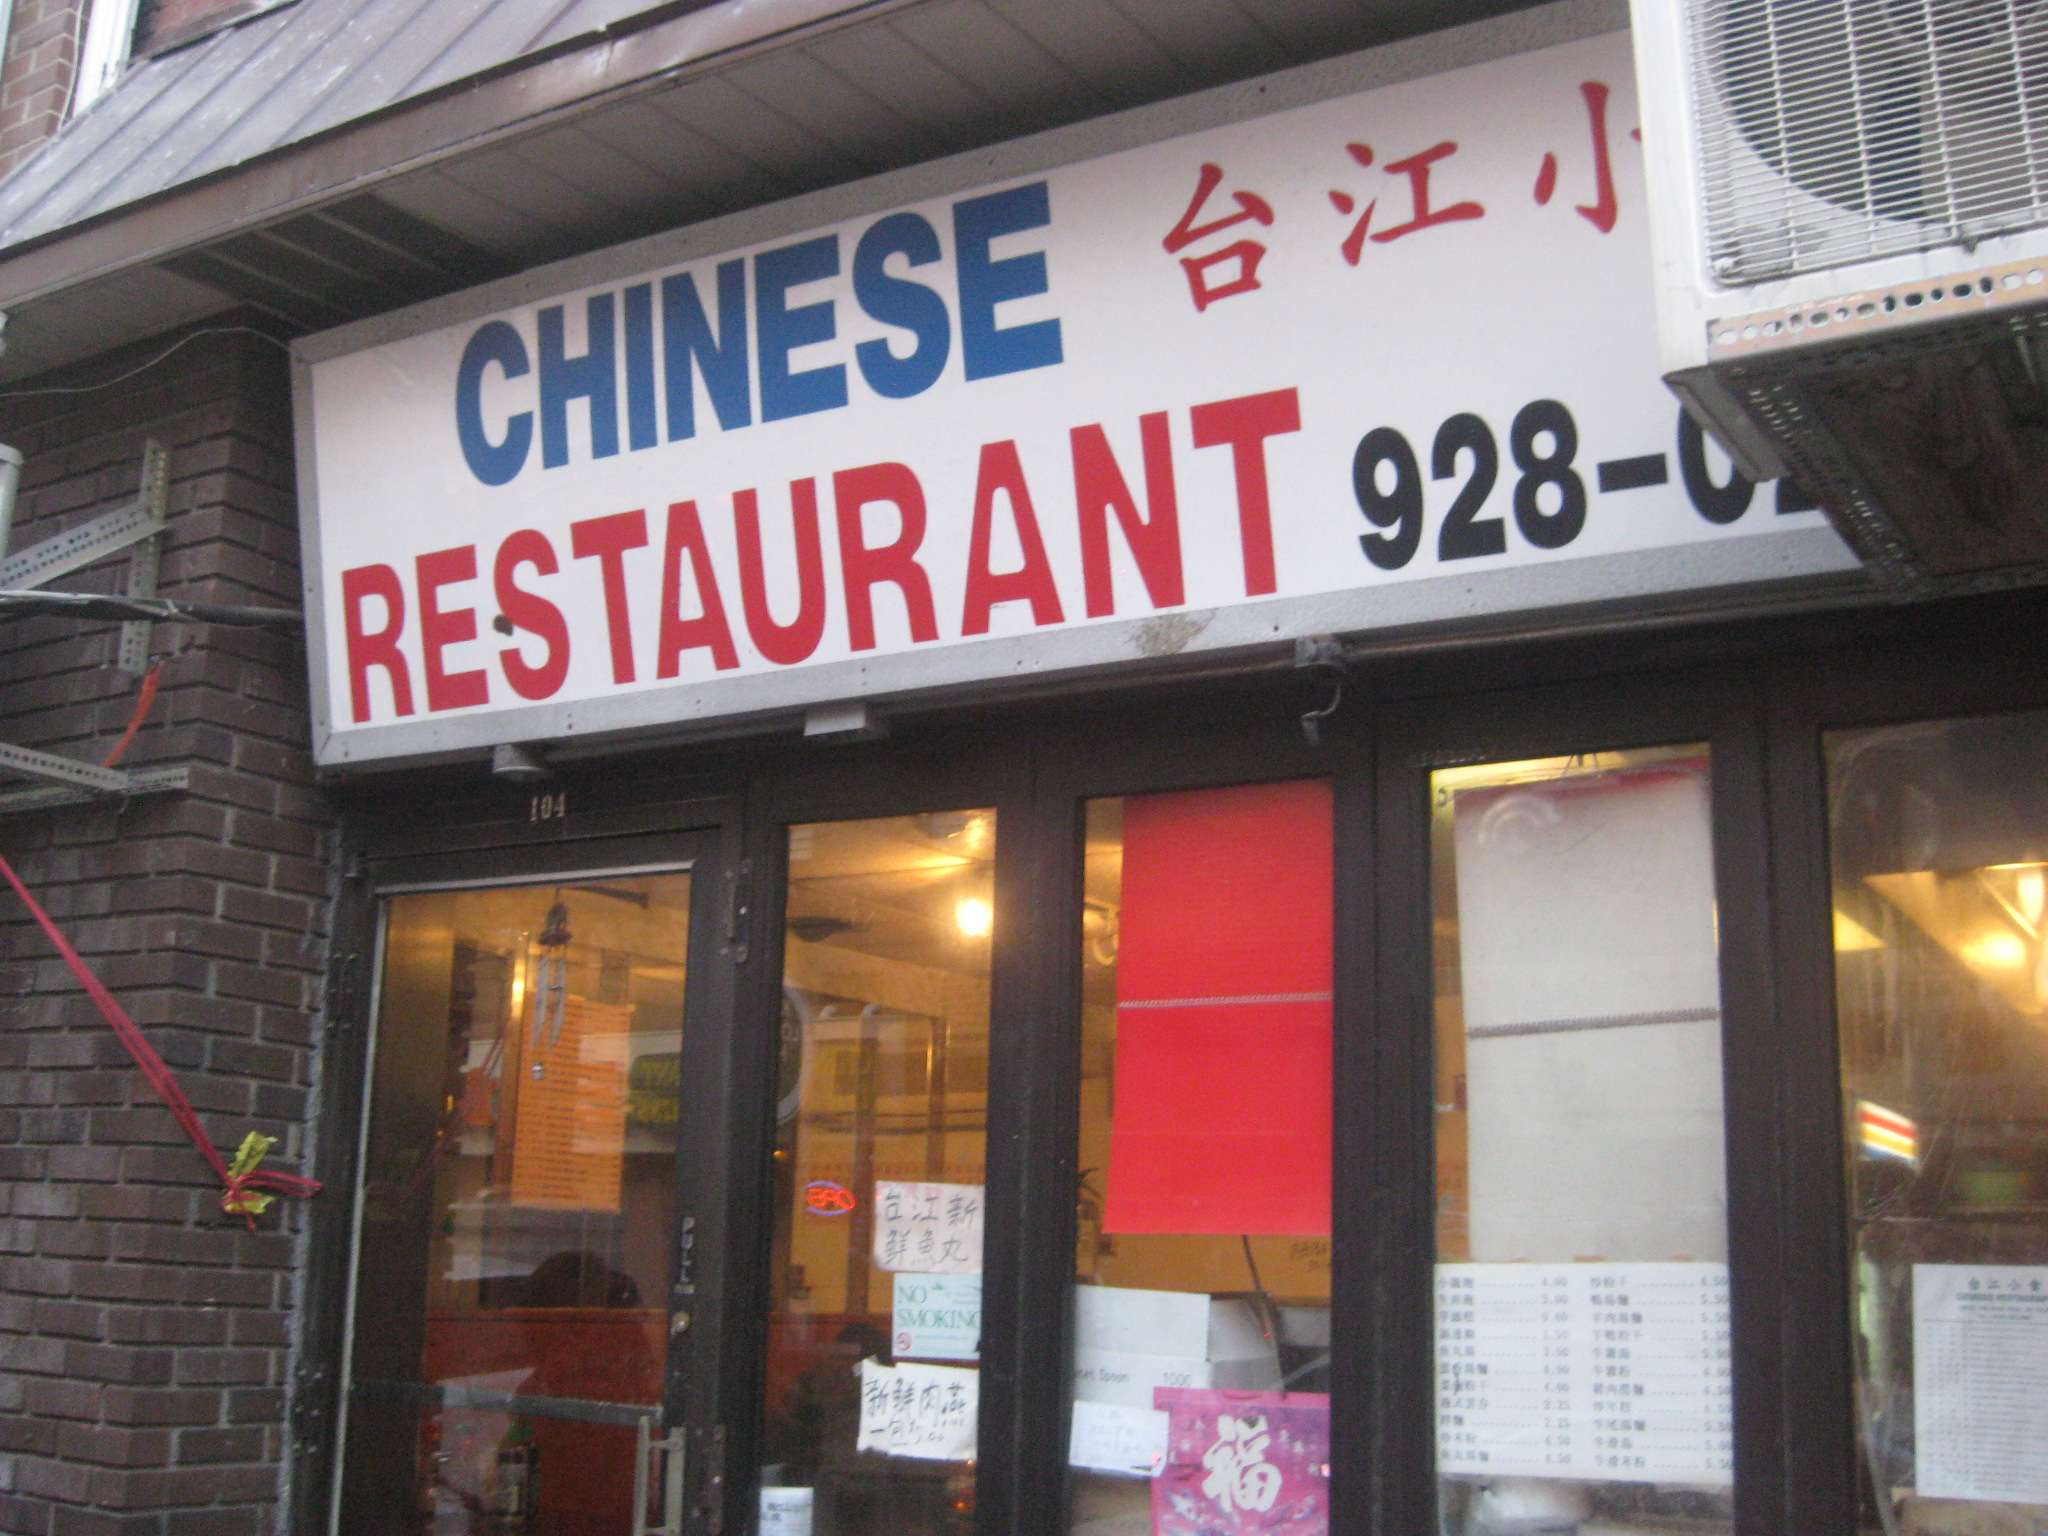 I Dare You To Find A Hole In The Wall Restaurant Tinier Than Chinese